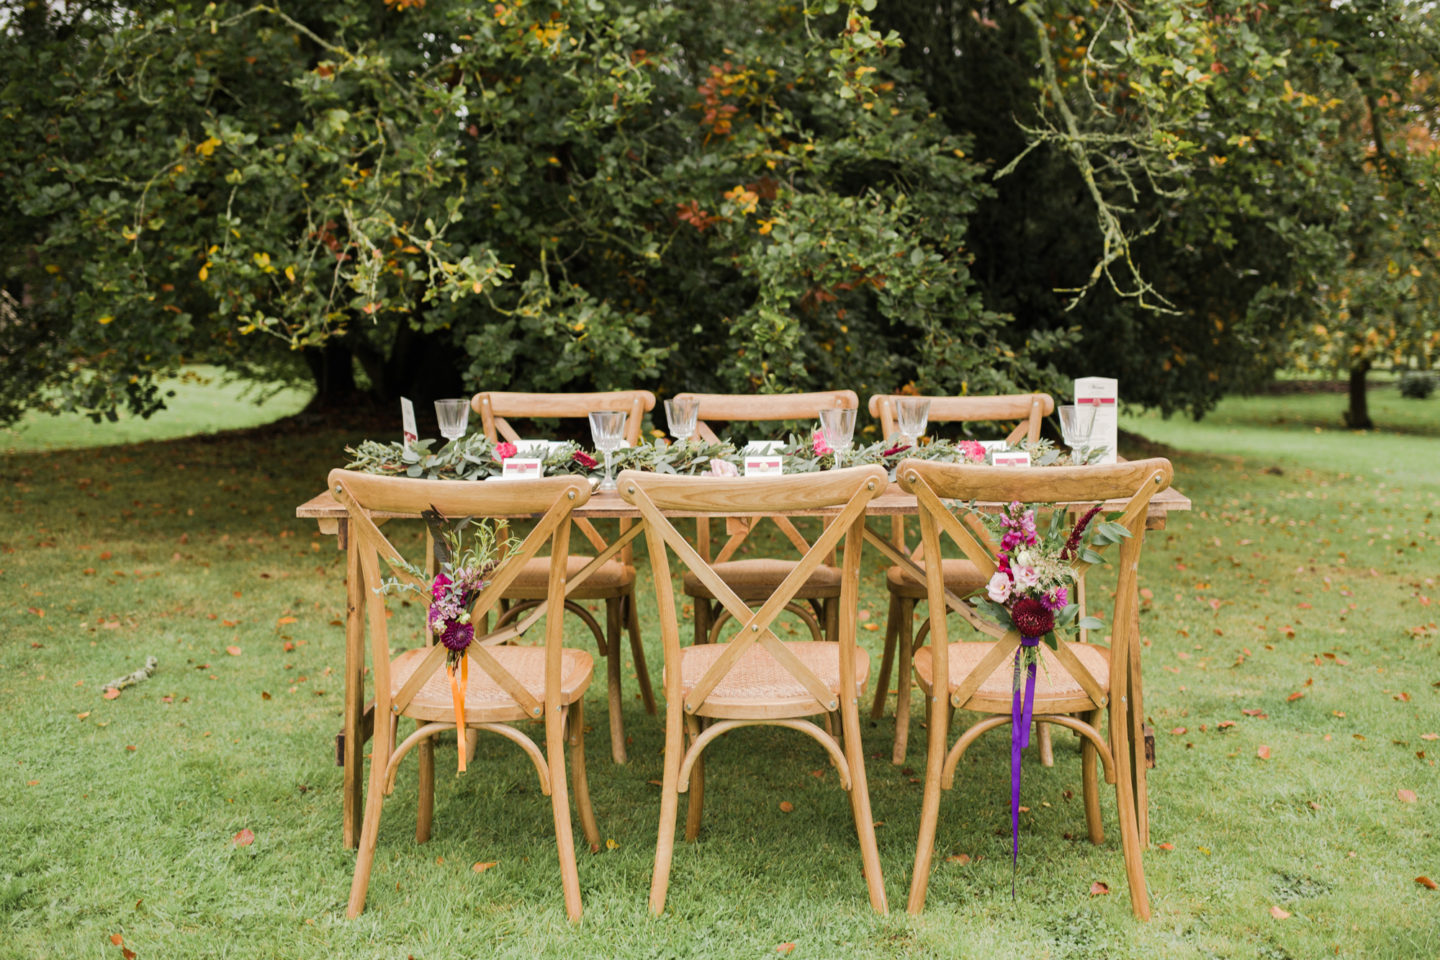 Outdoors wedding table set up